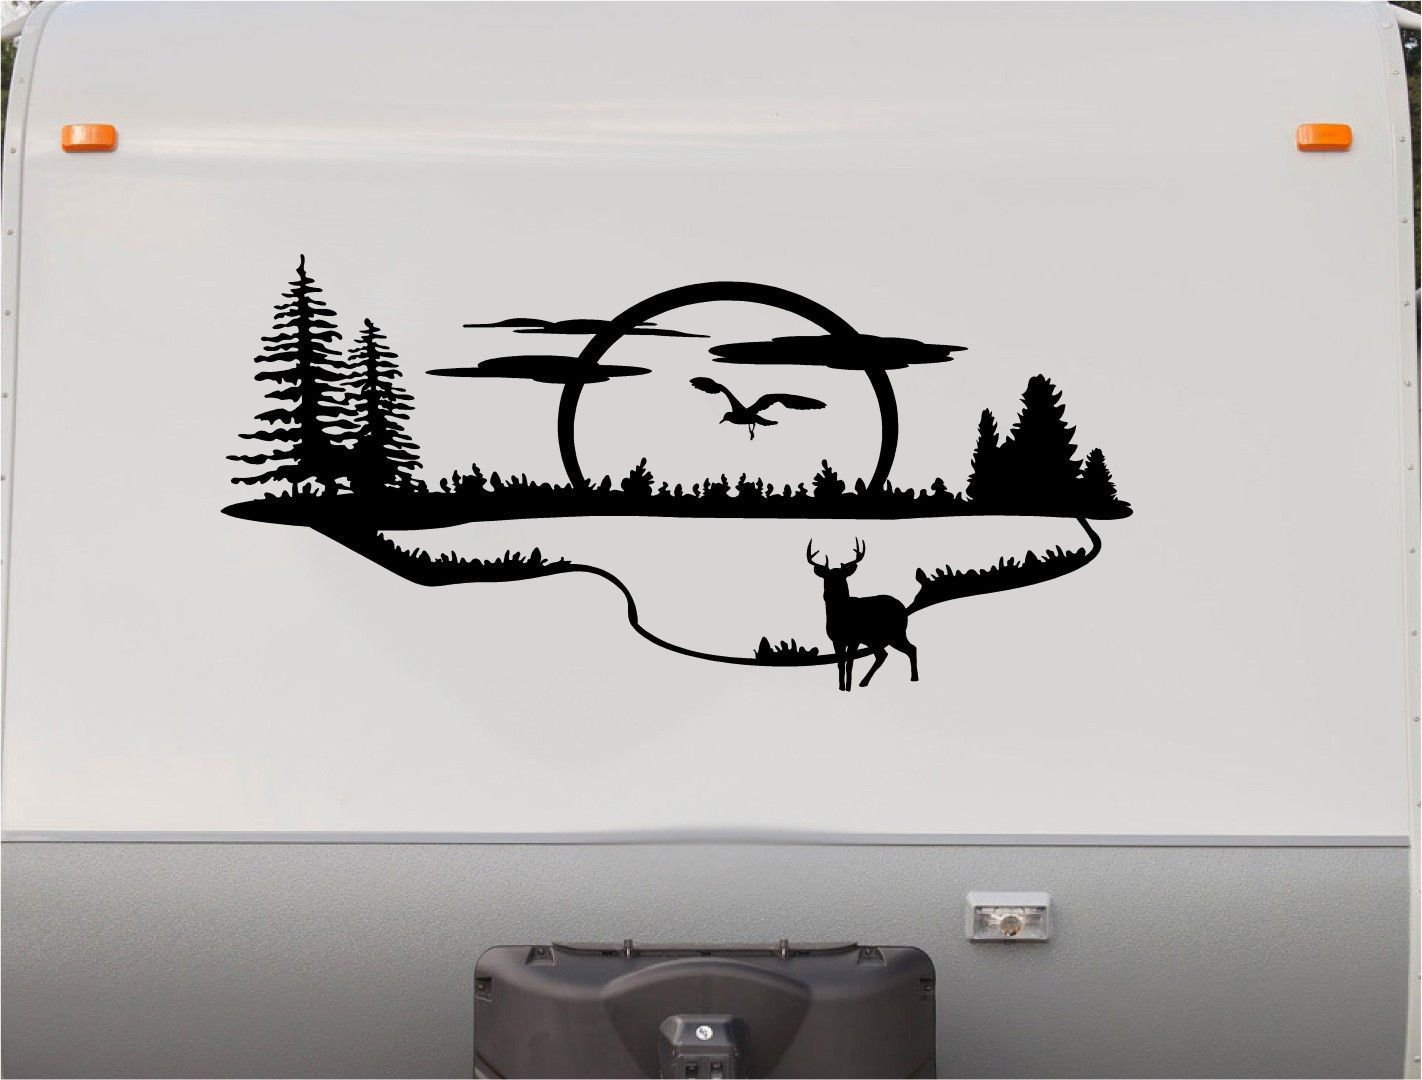 Mountains lake deer rv camper 5th wheel motorhome vinyl decal sticker graphic custom text mural v03